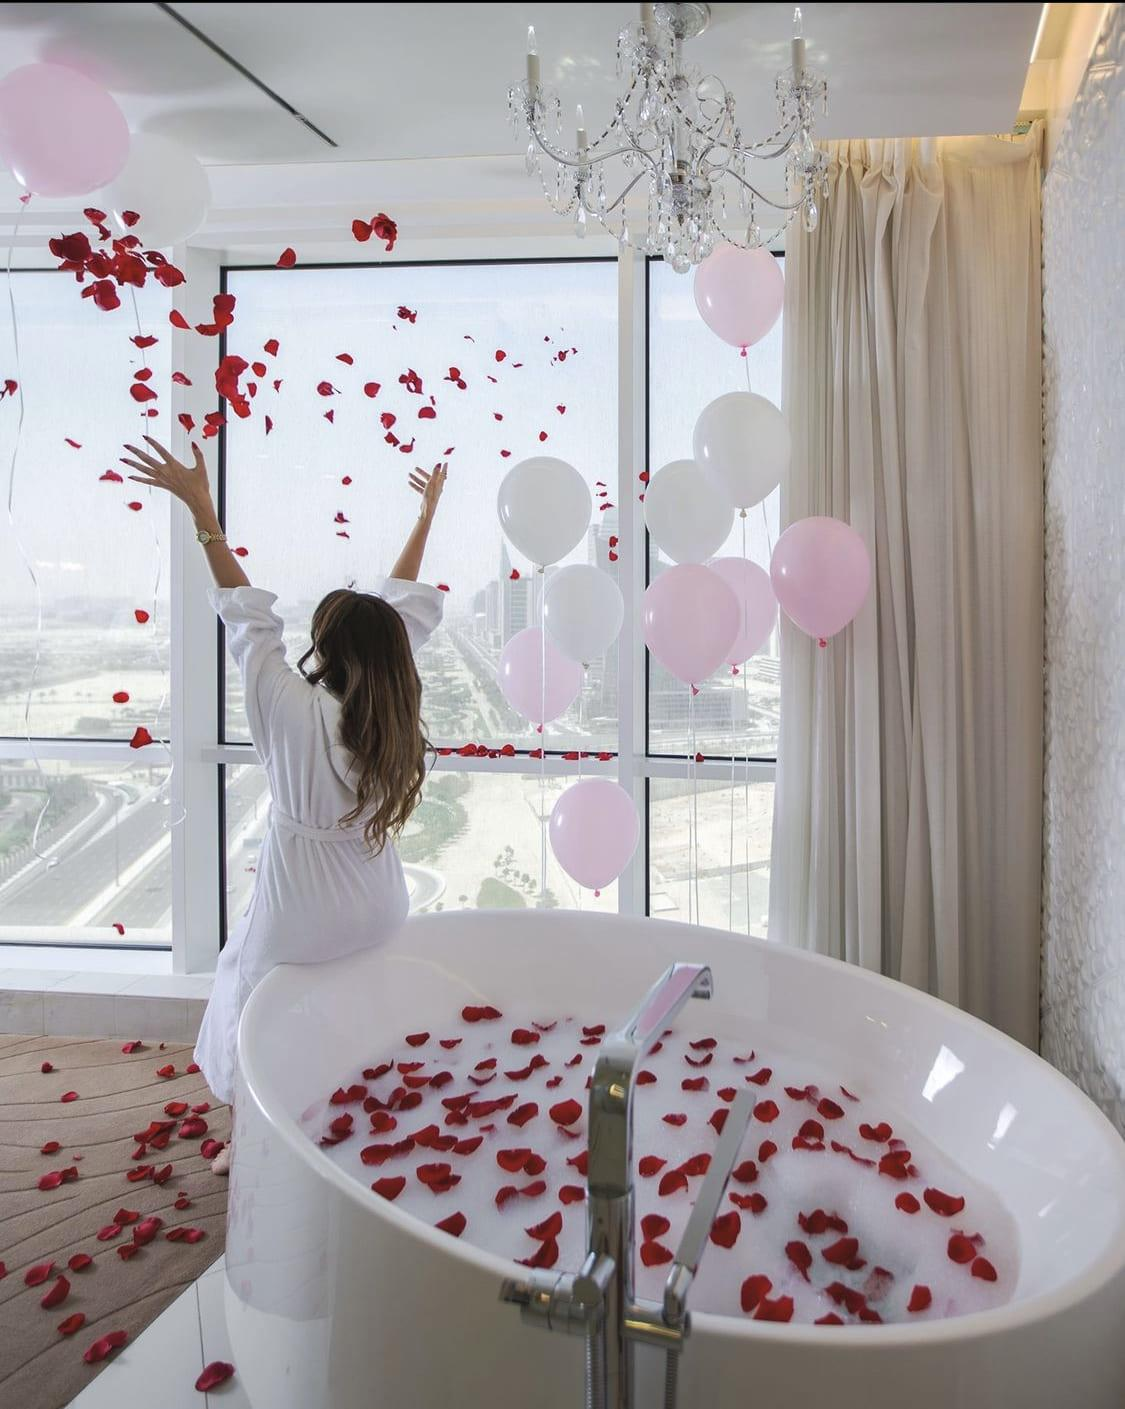 Woman throwing rose petals while leaning on a bathtub filled with rose petals